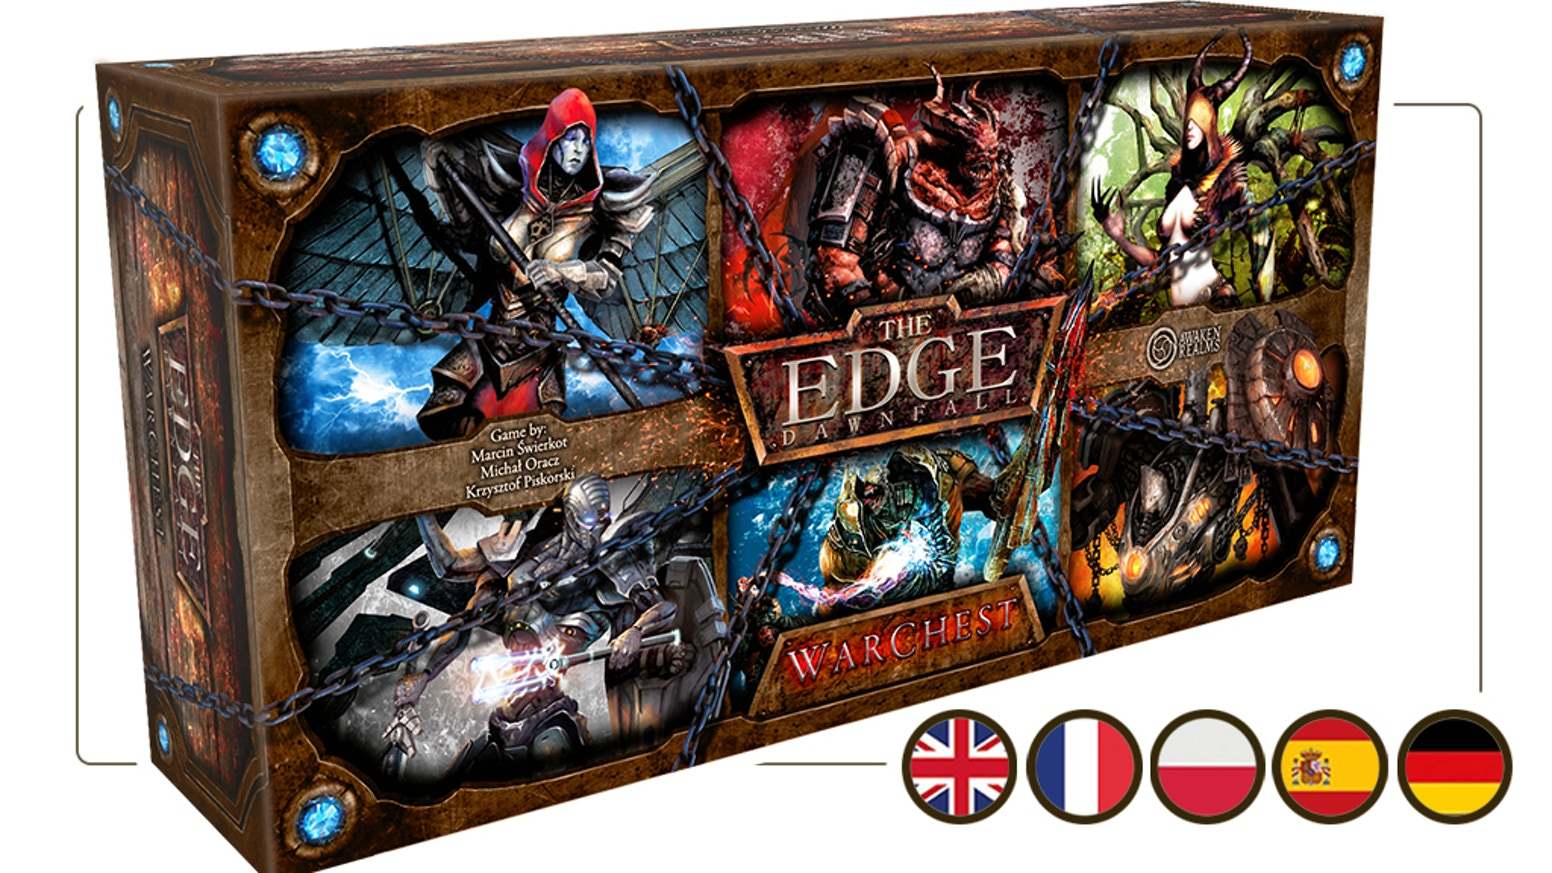 New miniature Board Game by Awaken Realms for 1-4 players, created by Michał Oracz.